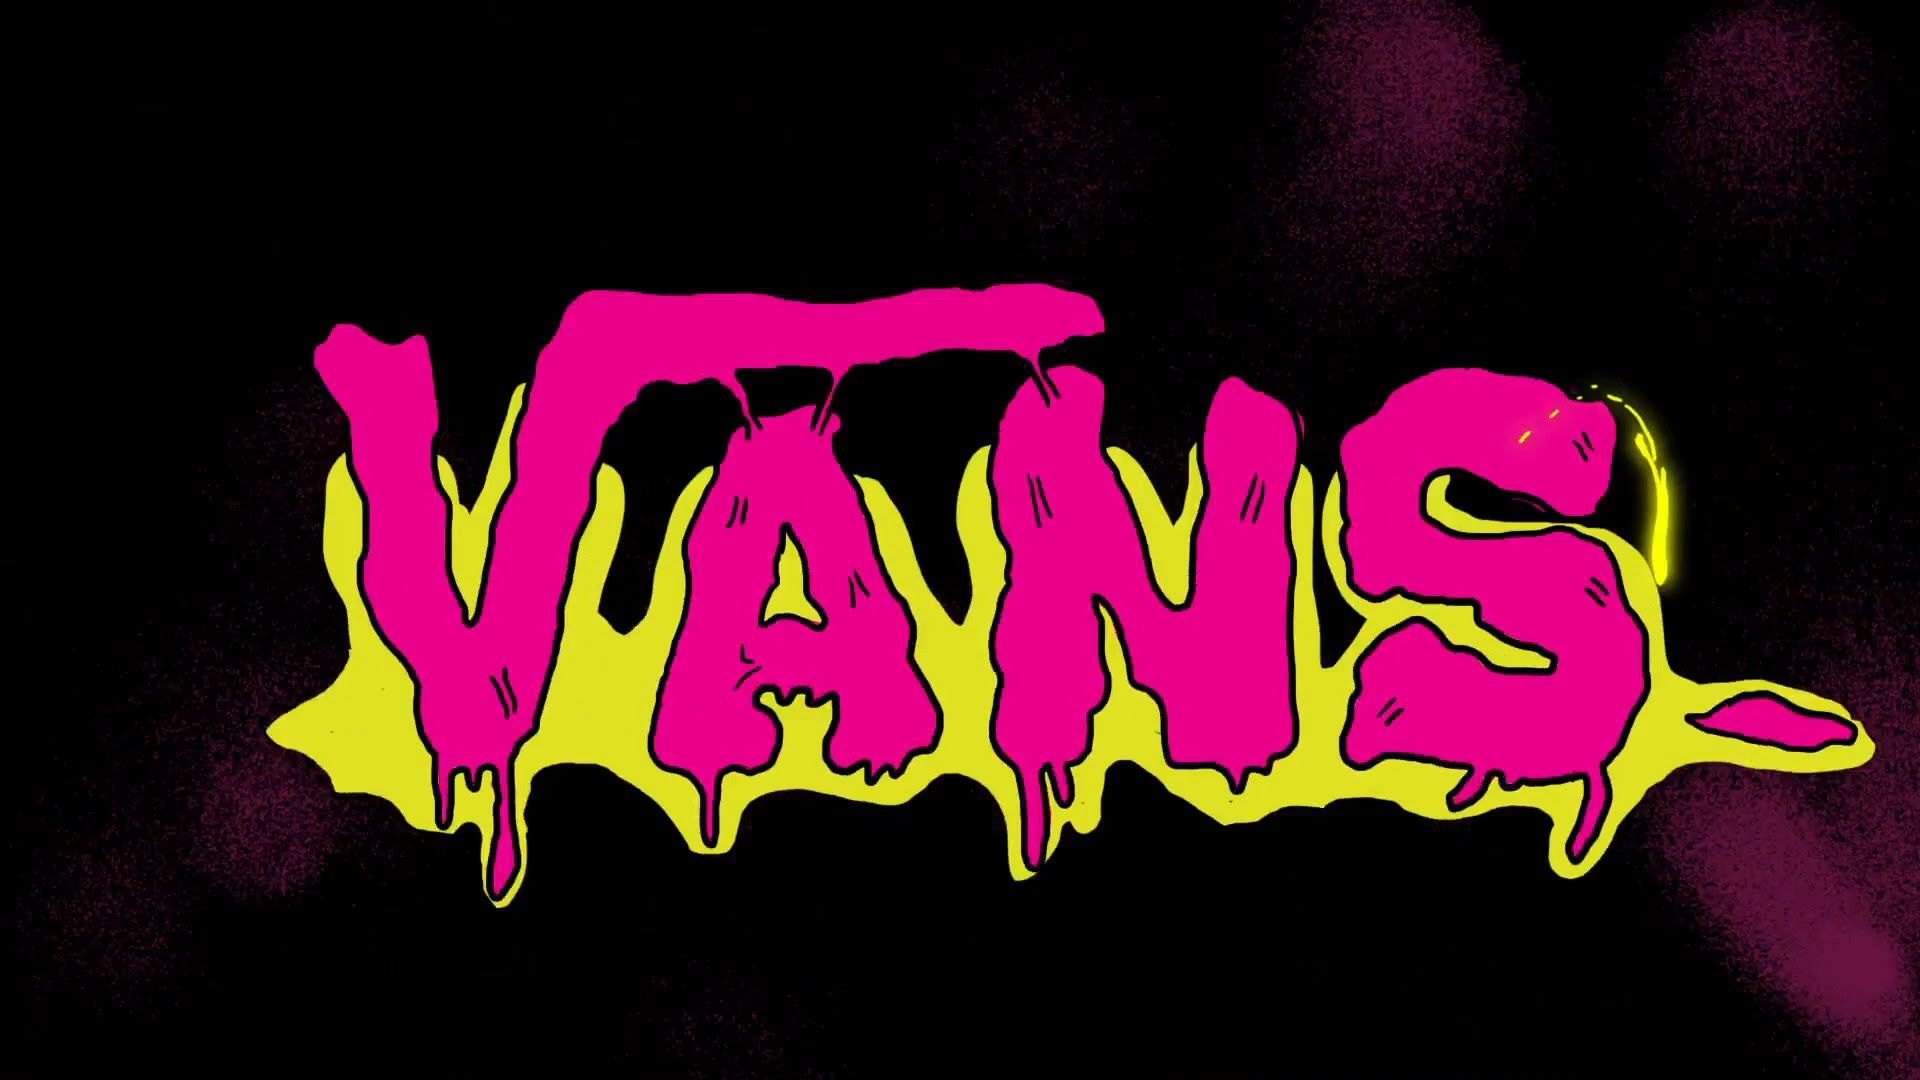 Vans Logo Wallpapers HD Logo wallpaper